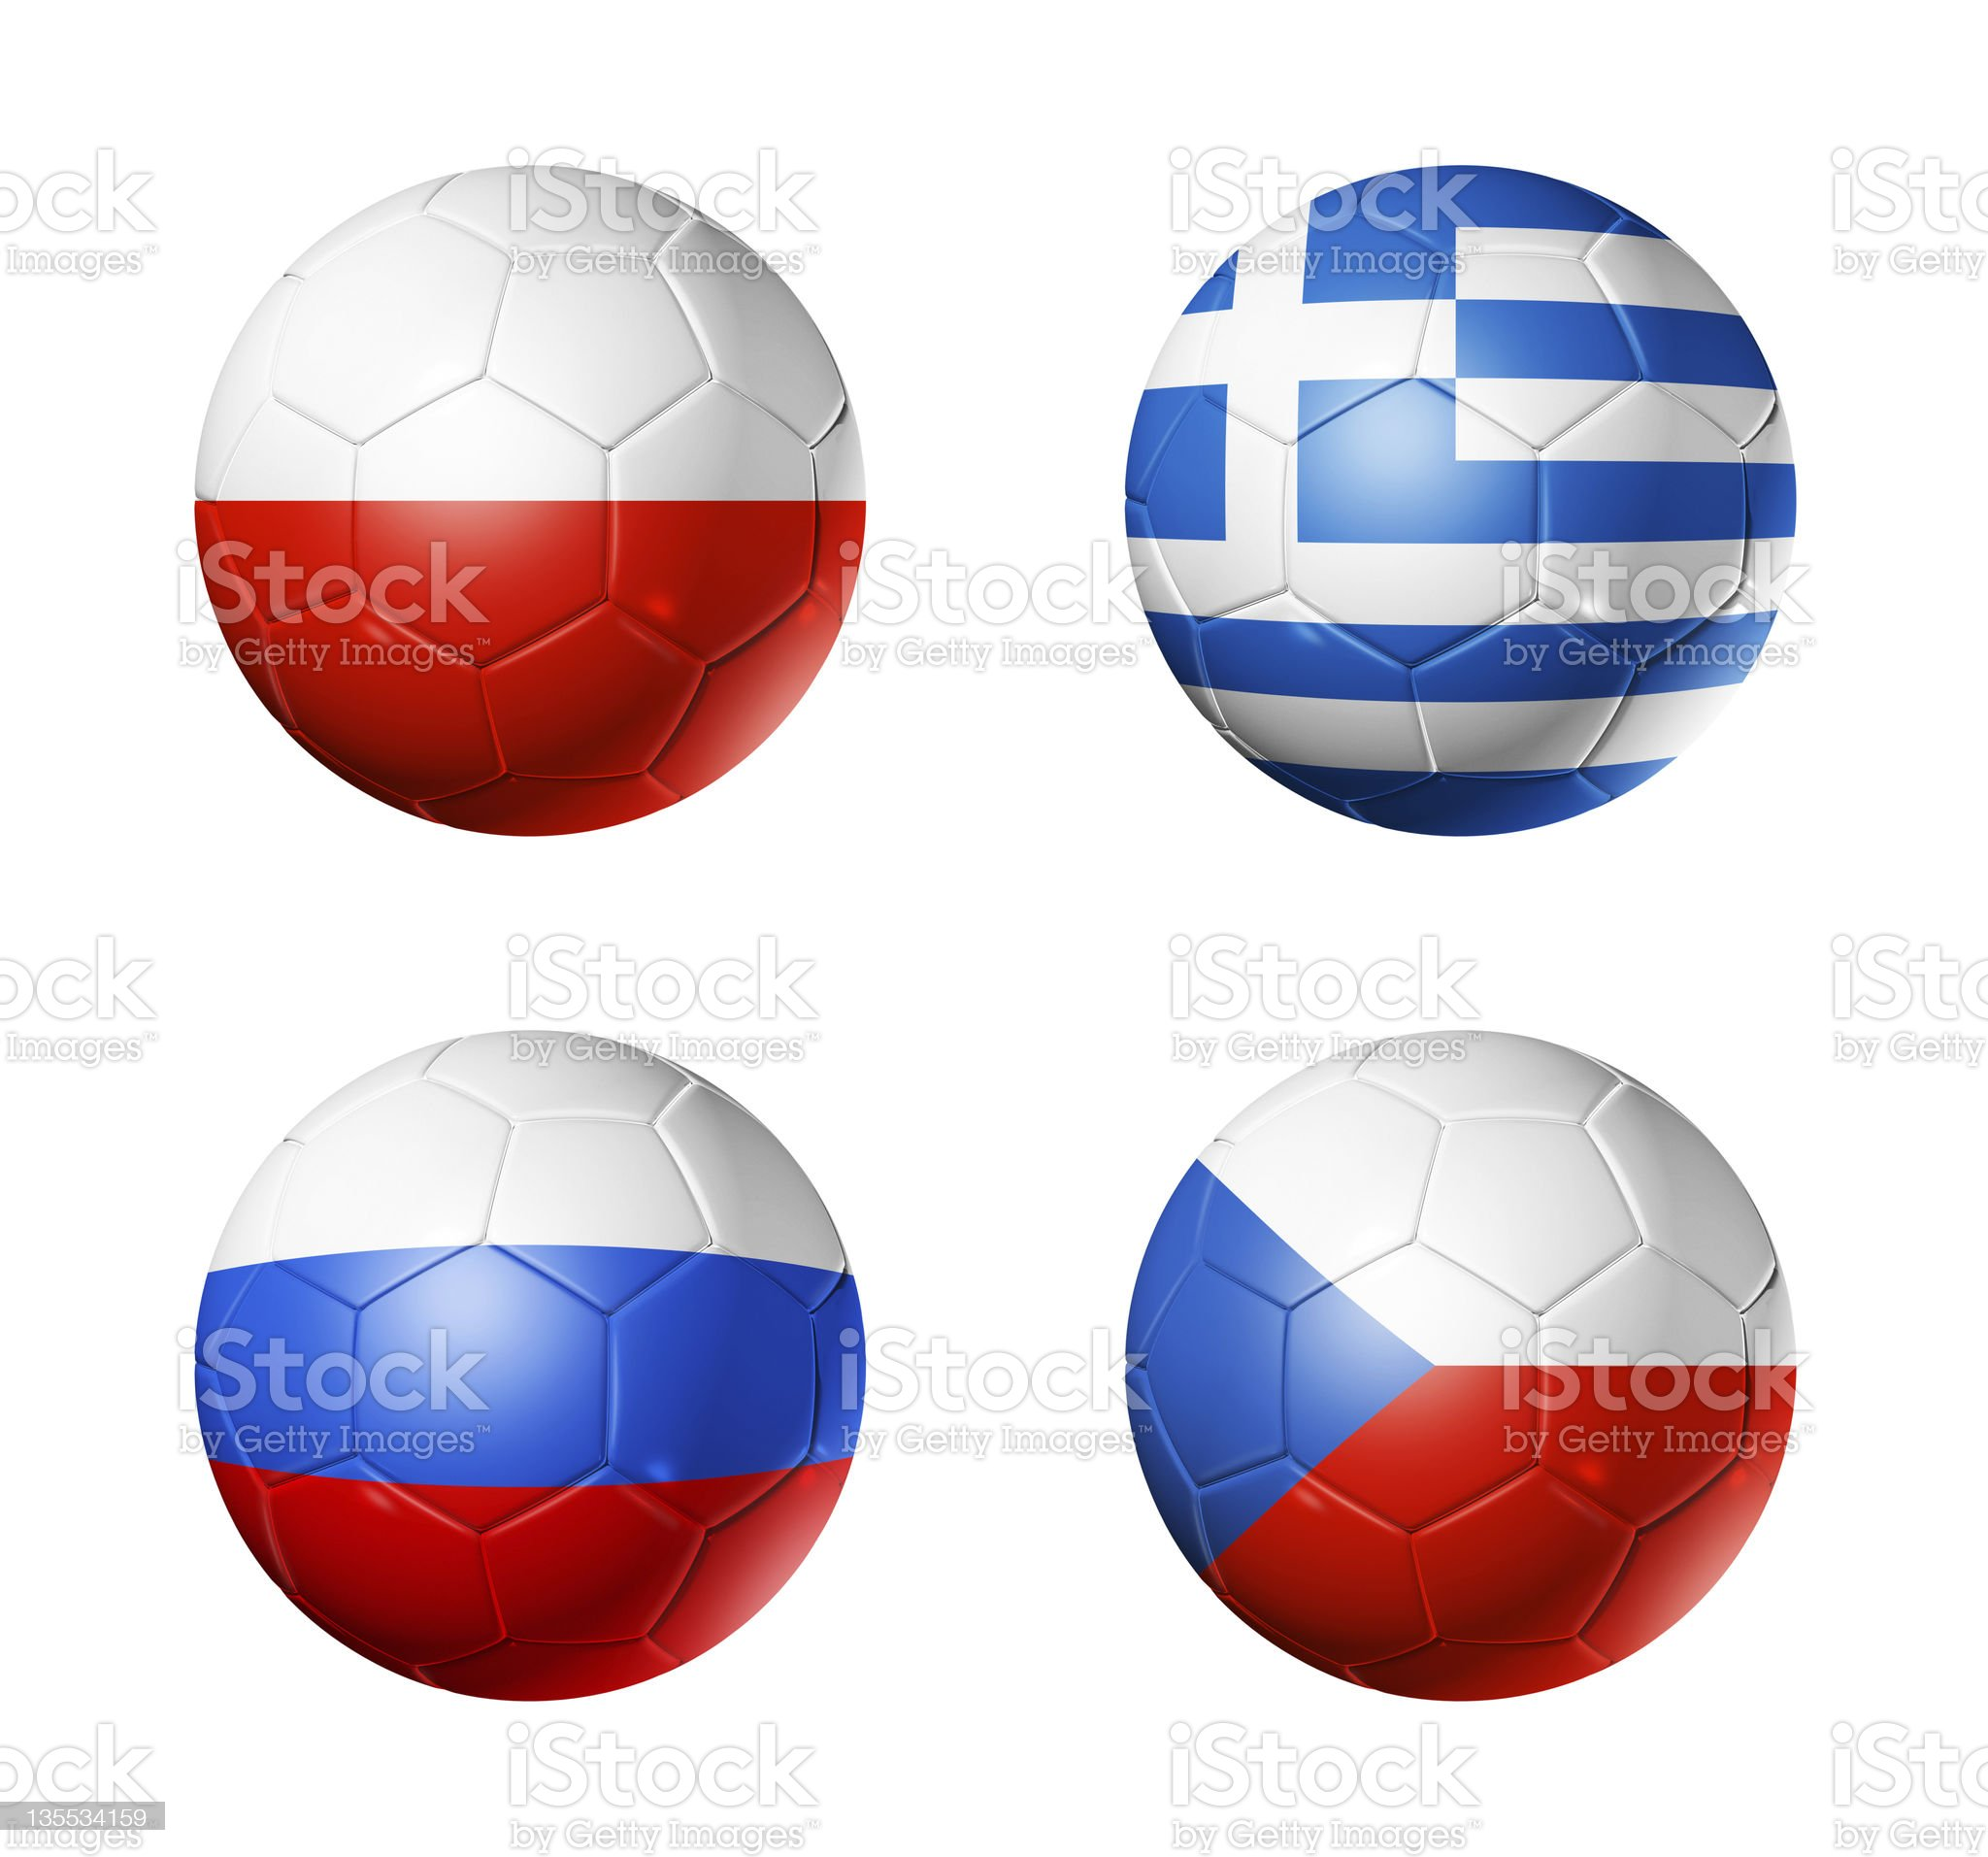 soccer euro 2012 - group A flags on soccerballs royalty-free stock photo